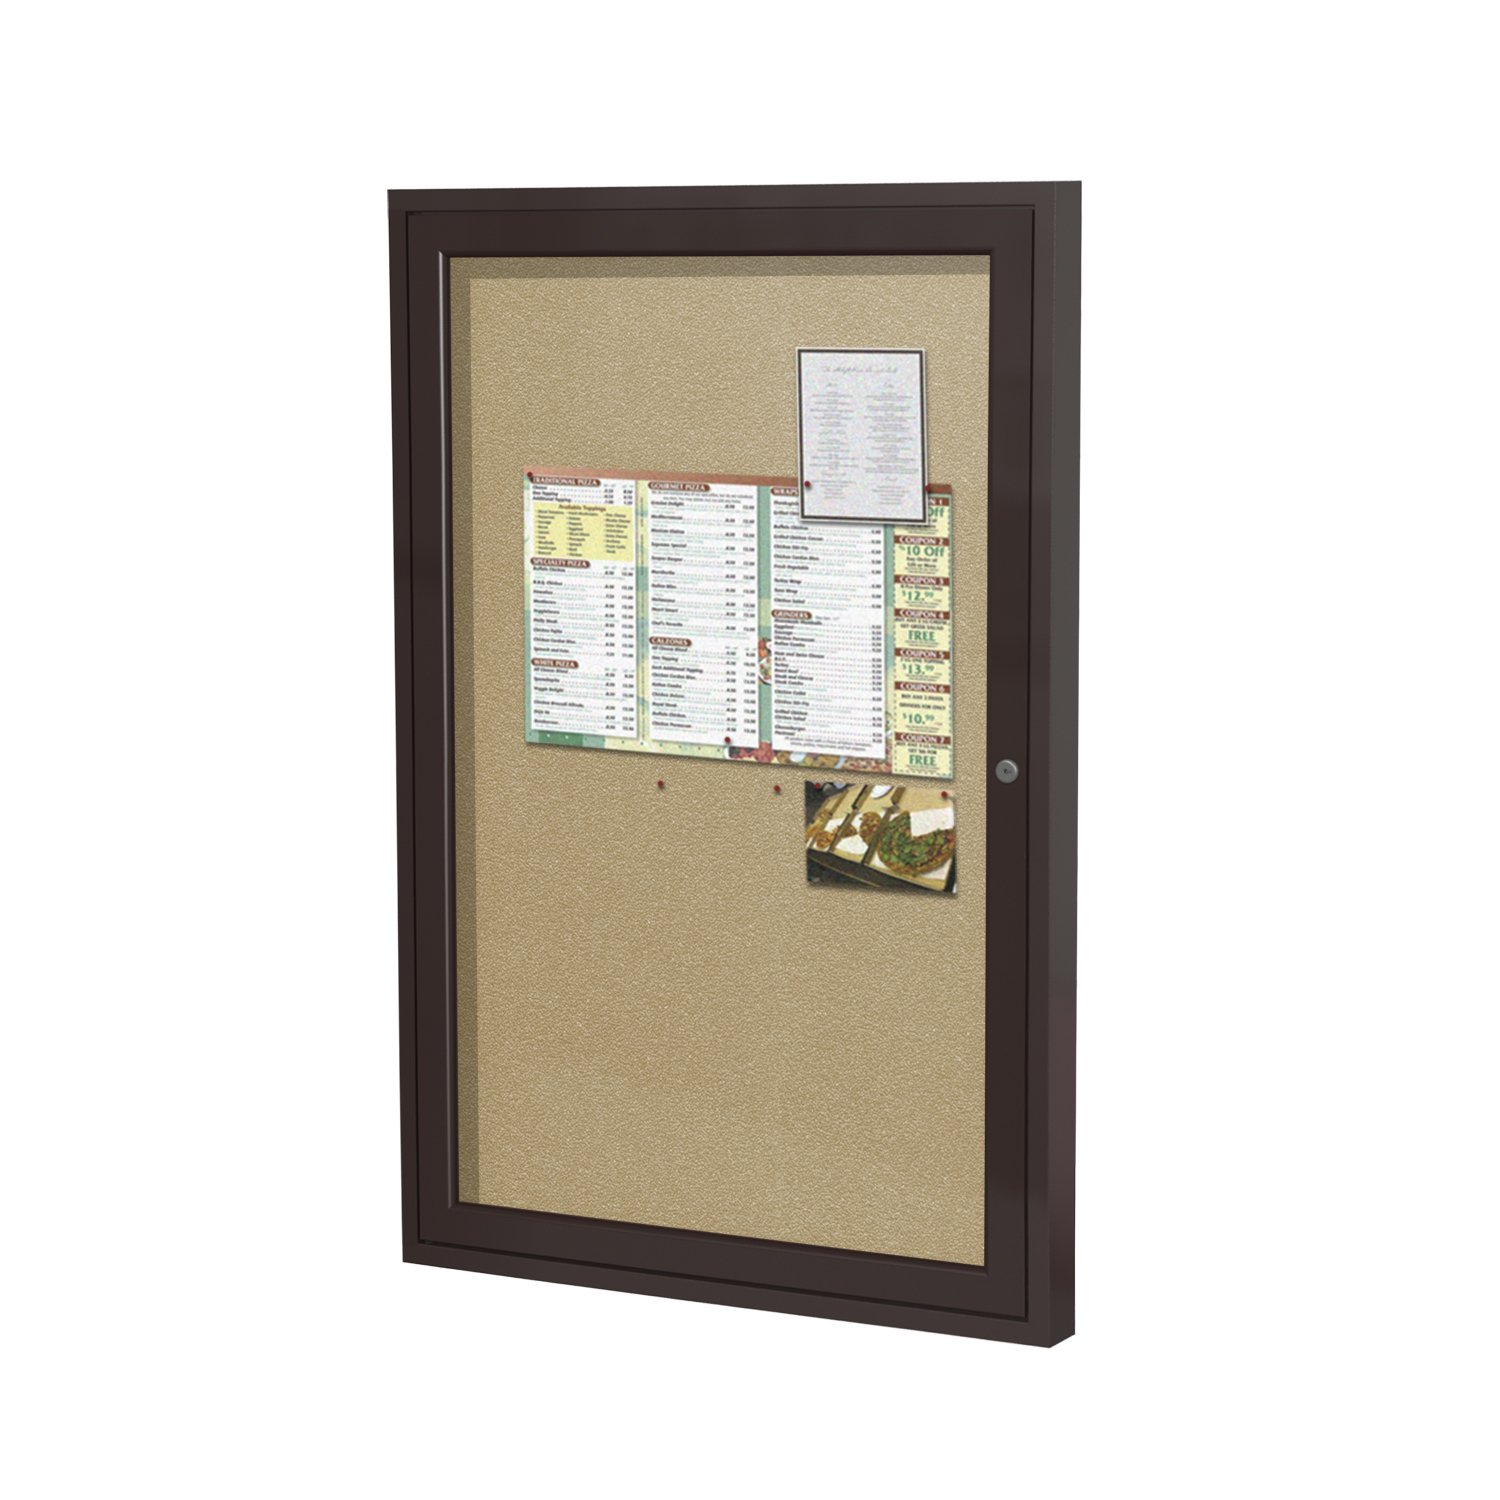 Ghent 36''x30''  1-Door Outdoor Enclosed Vinyl Bulletin Board, Shatter Resistant, with Lock, Bronze Aluminum Frame  - Caramel (PB13630VX-181), Made in the USA